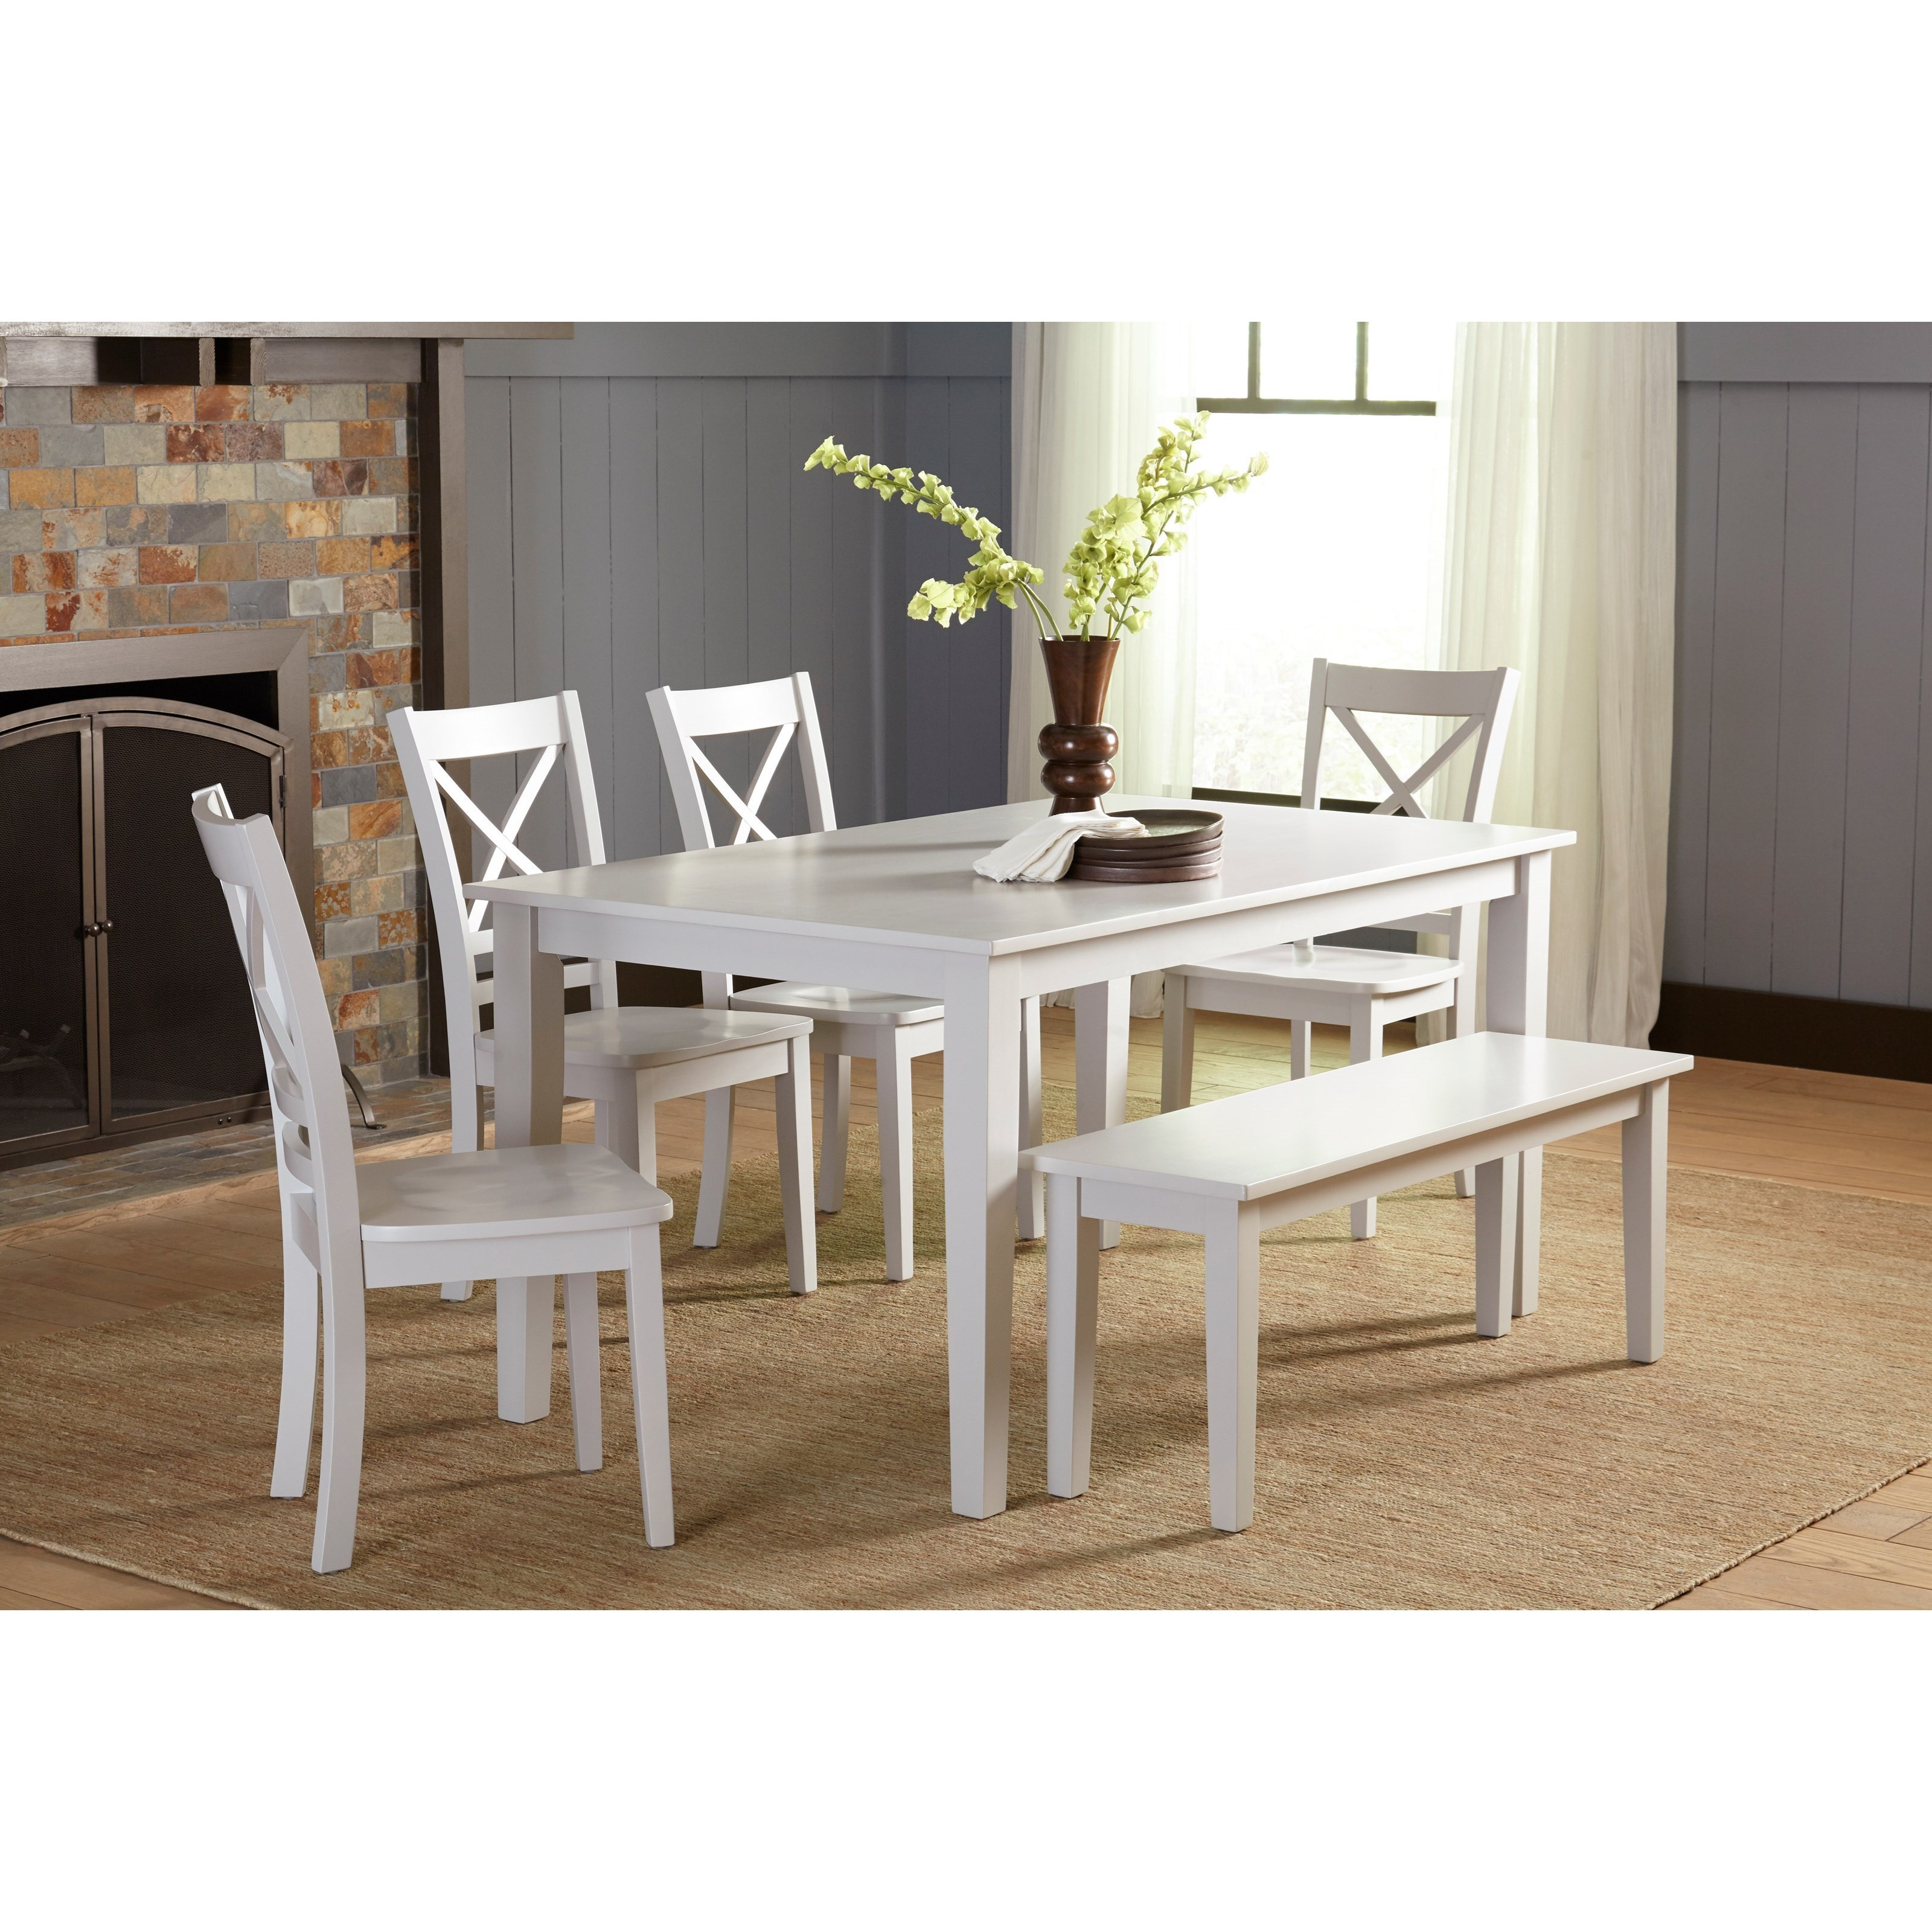 Jofran Simplicity Dining Table And Chair/Bench Set